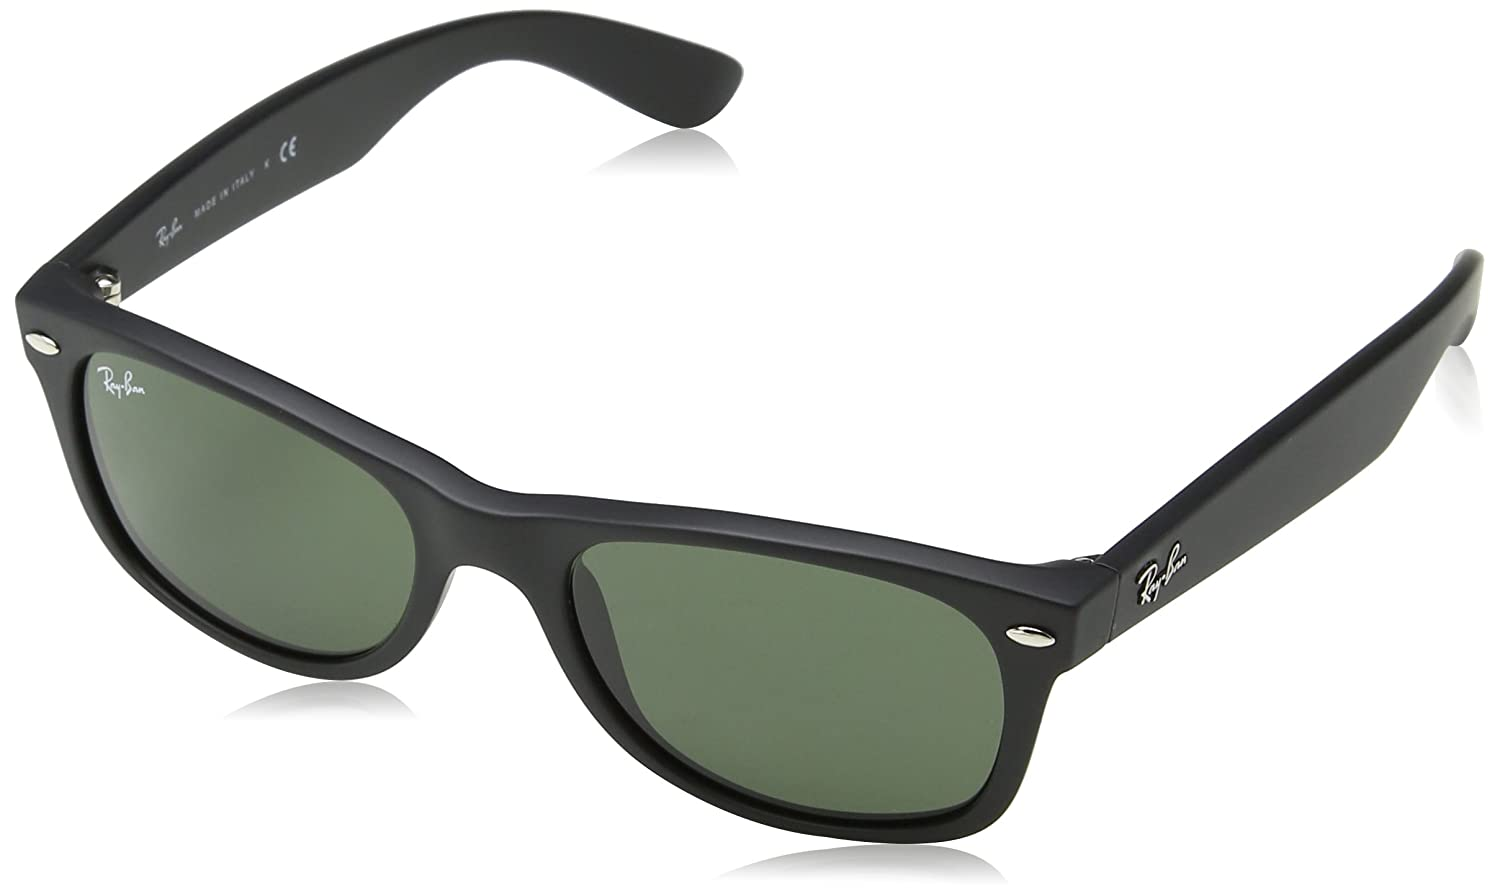 a26e2c10841a Ray-Ban Wayfarer Unisex Sunglasses (RB2132|622 52|Grey Green): Ray-Ban:  Amazon.in: Clothing & Accessories